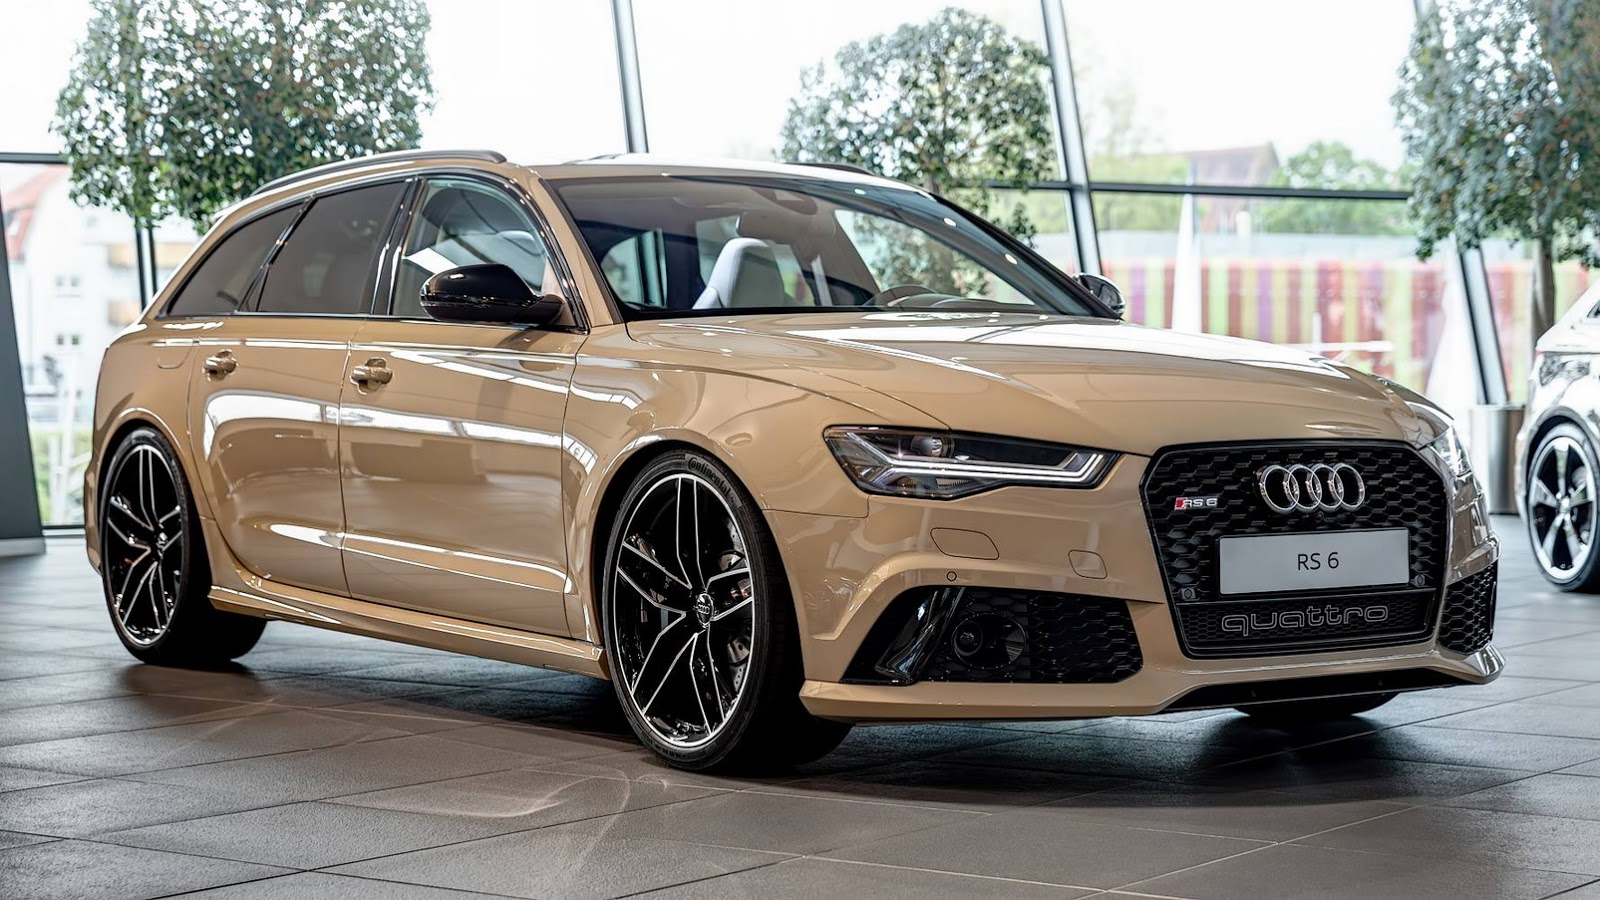 2015_Audi_RS6_exclusive (11)